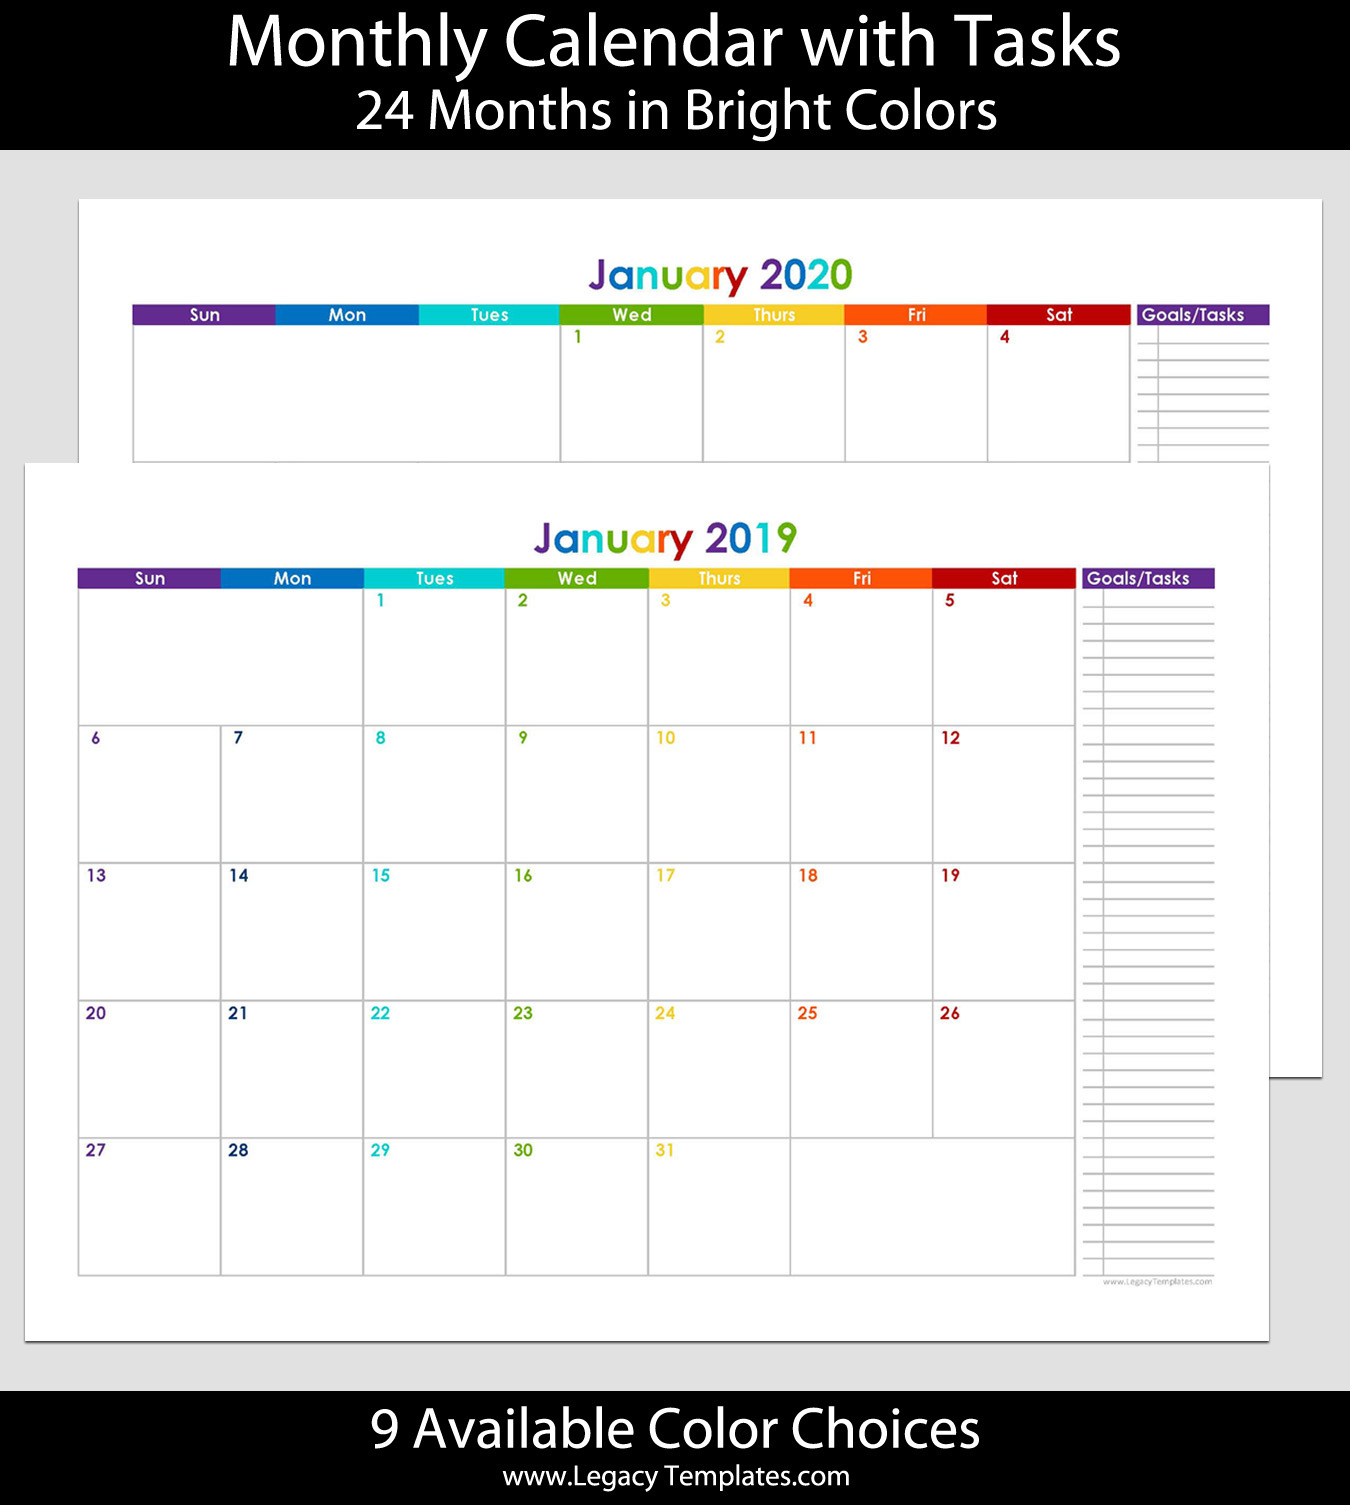 Tusd Calendar 2020-2016 12 Month Calendar 2020 – Daily Motivational Quotes